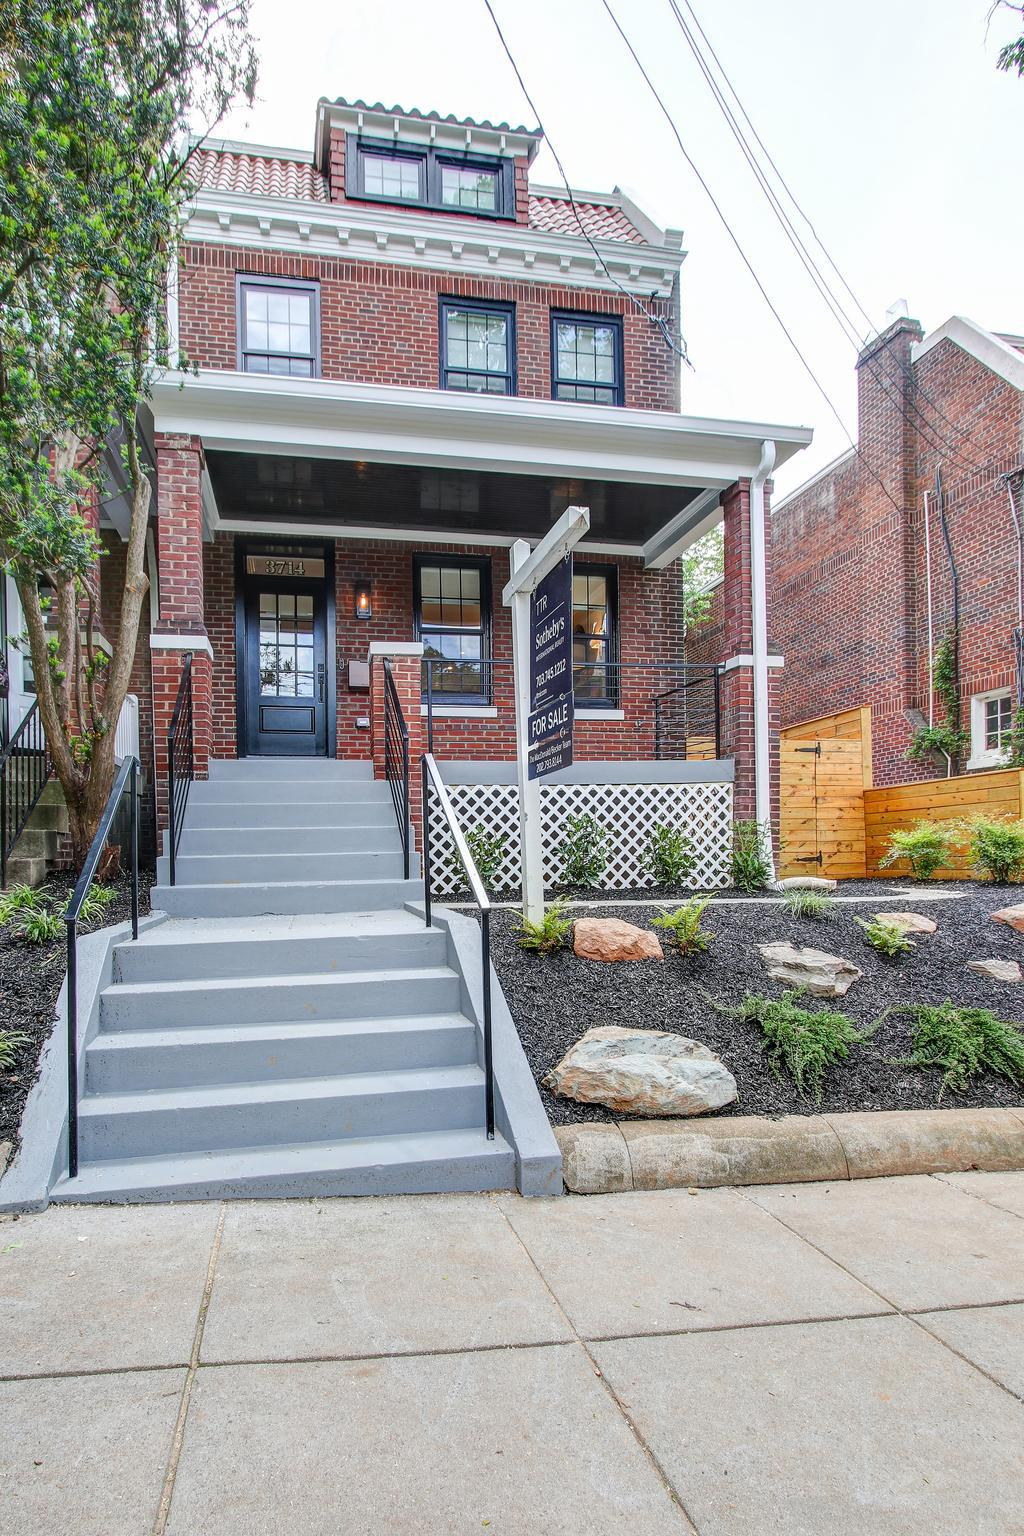 Other Residential for Sale at 3714 Garfield St NW Washington, District Of Columbia 20007 United States